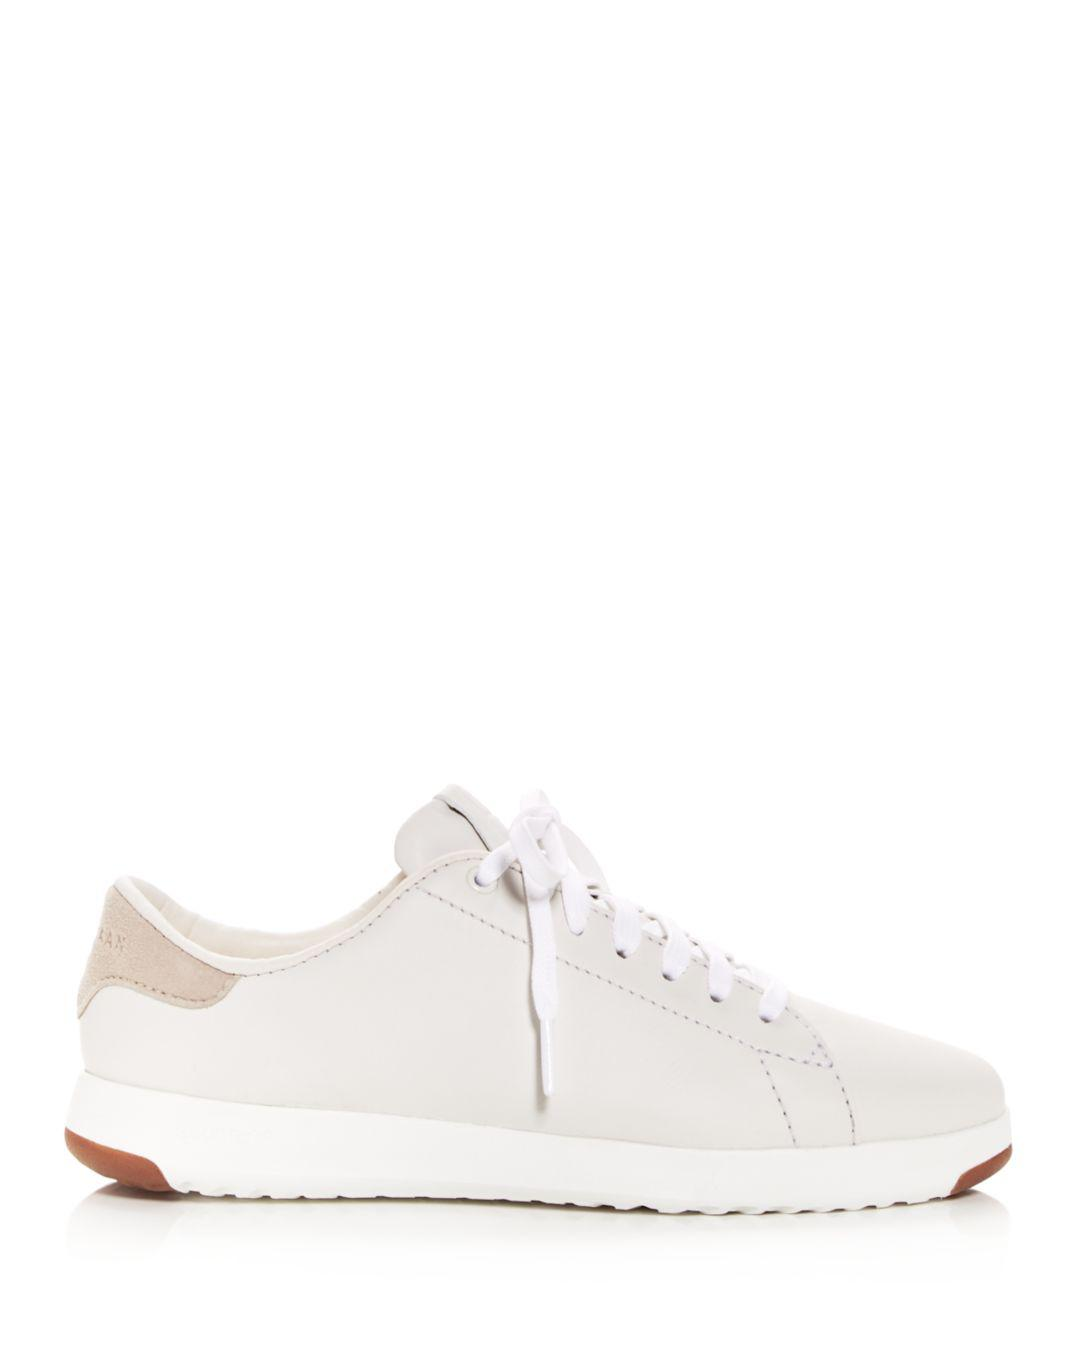 c249544d9ae Lyst - Cole Haan Women s Grandsport Leather Lace Up Sneakers in White